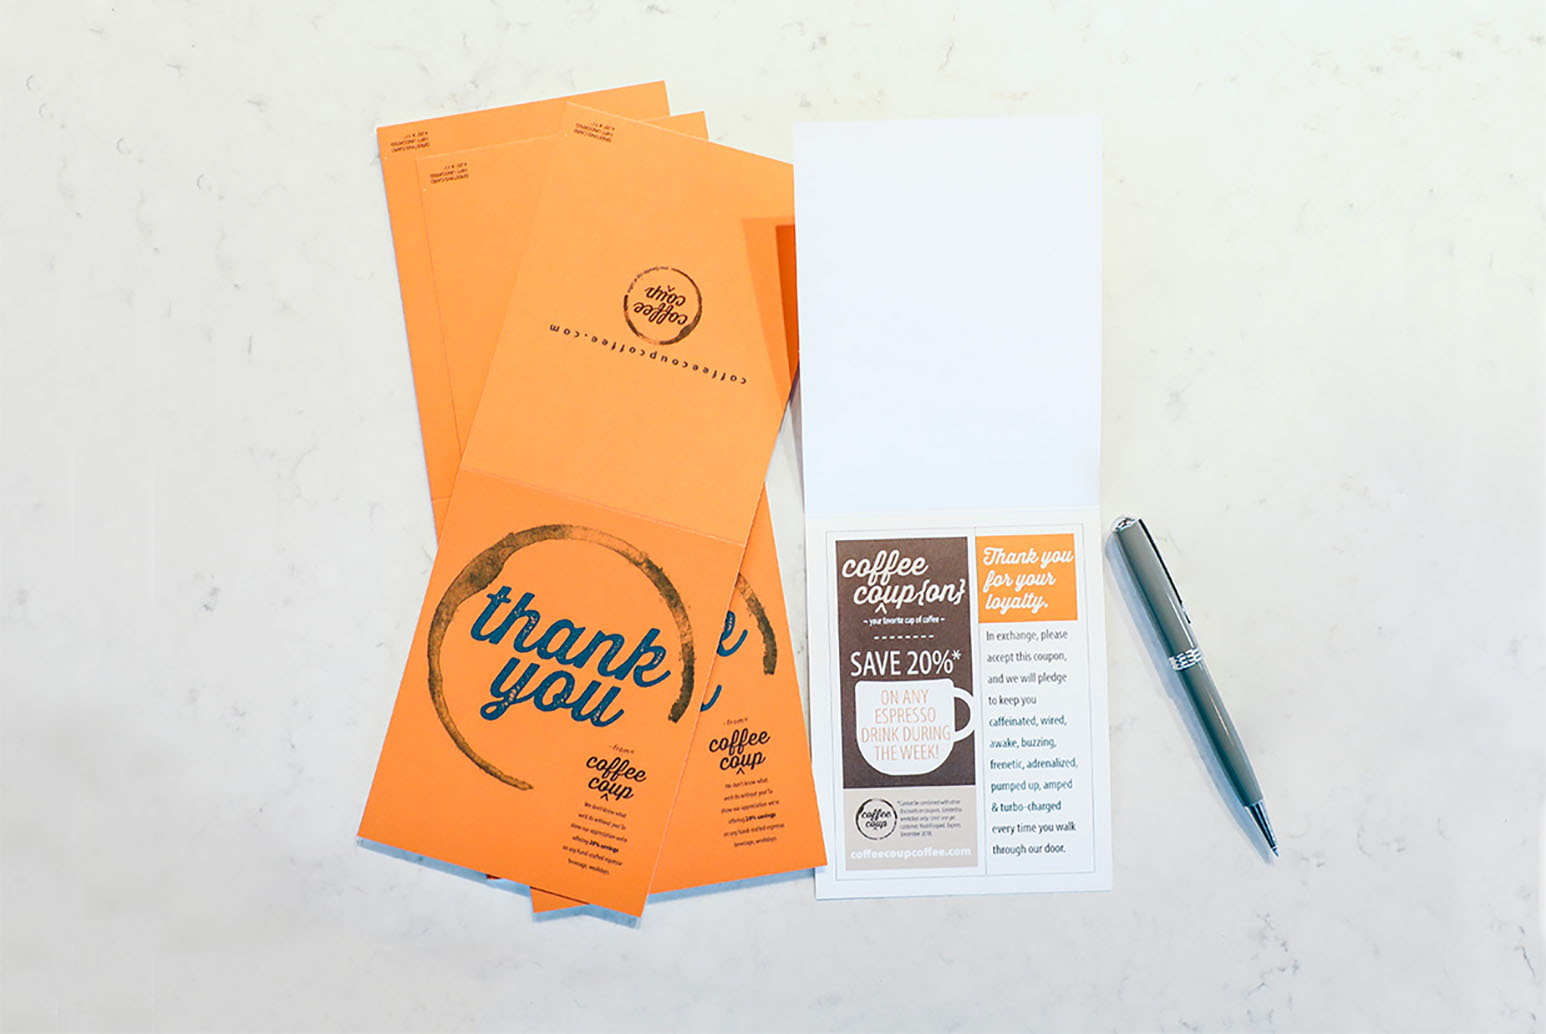 Business thank you cards offer many benefits. A simple thank you message to business partners, customers, and members of your organization can help strengthen your business relationships